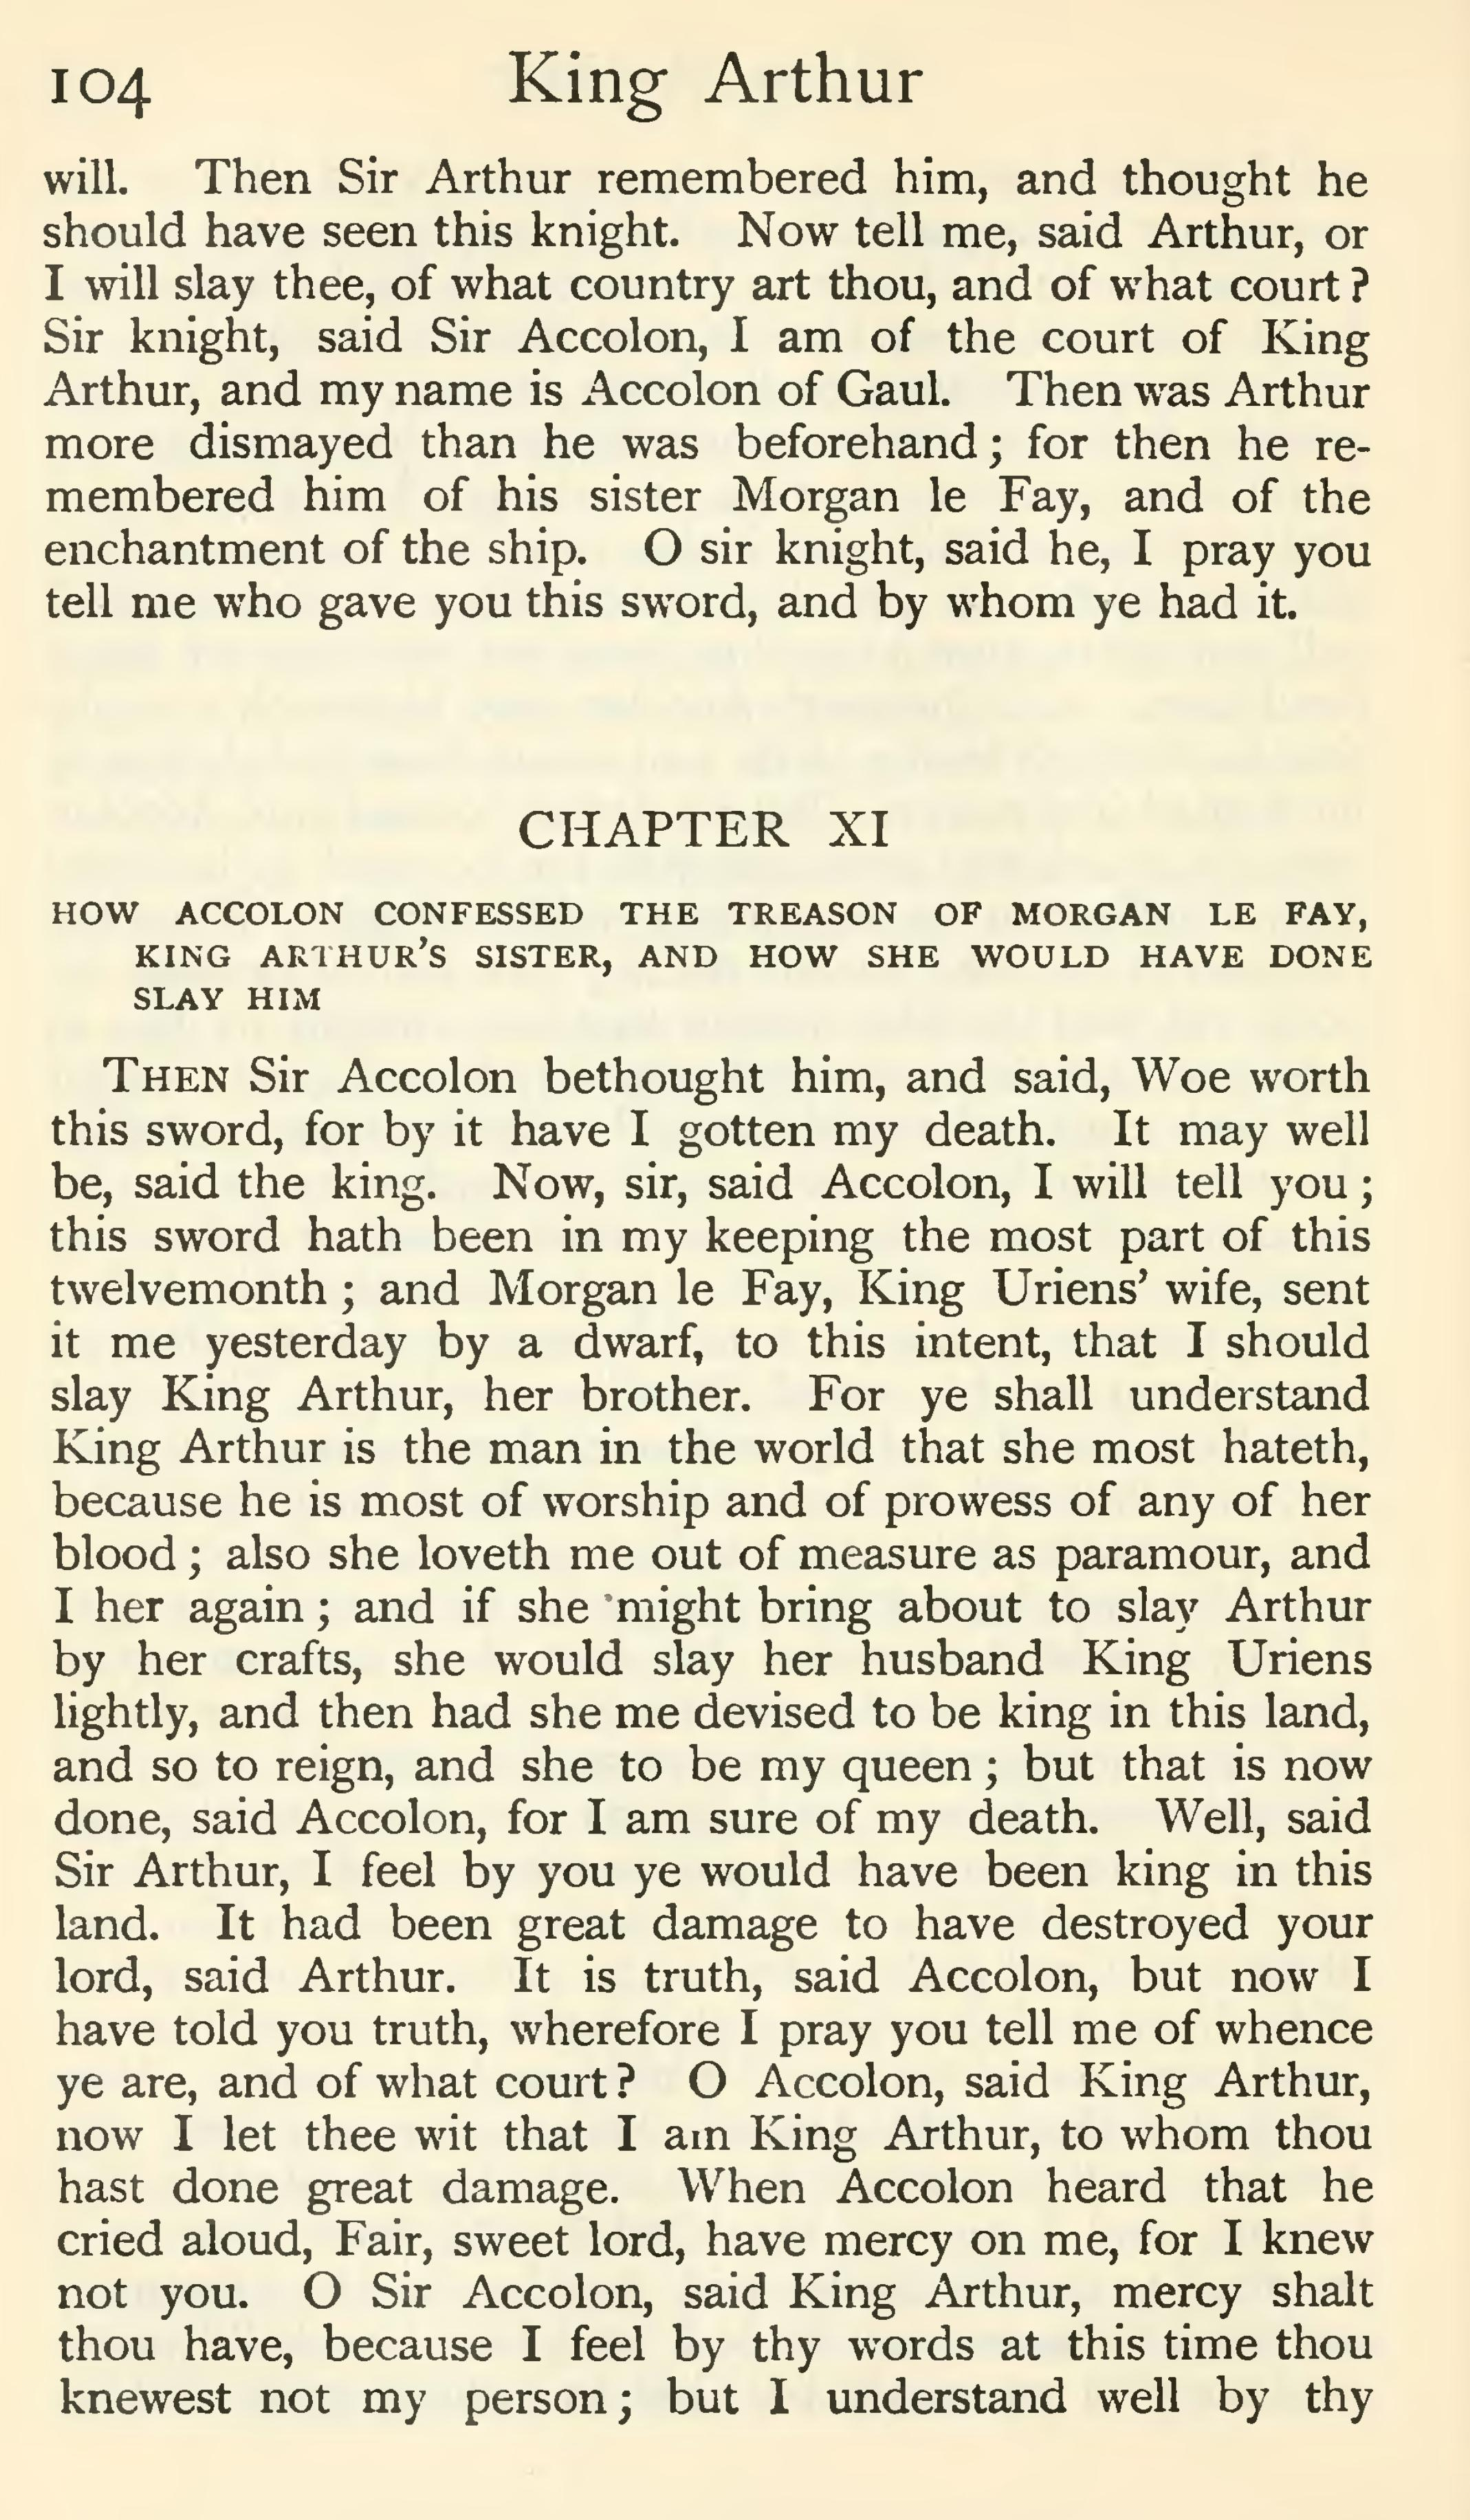 morte darthur essay A literary analysis of imagination in morte d'arthur pages 2 words 504 view full essay sign up to view the rest of the essay read the full essay more essays like this: imagination in morte d arthur, king arthur, morte d arthur not sure what i'd do without @kibin.